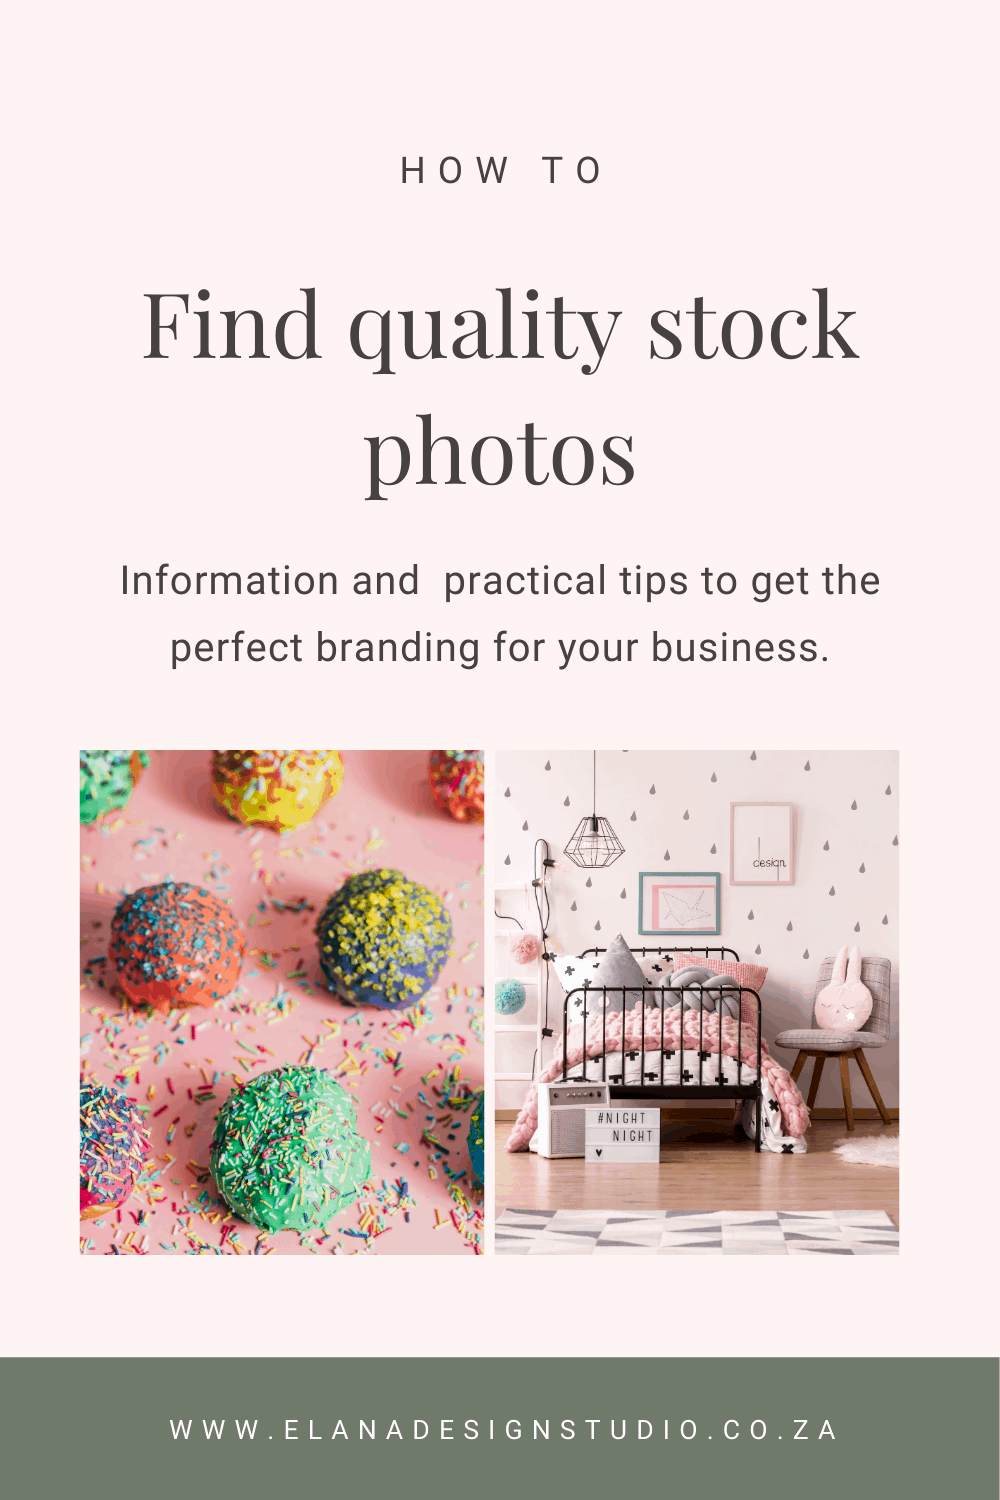 Where to find free high quality stock photos